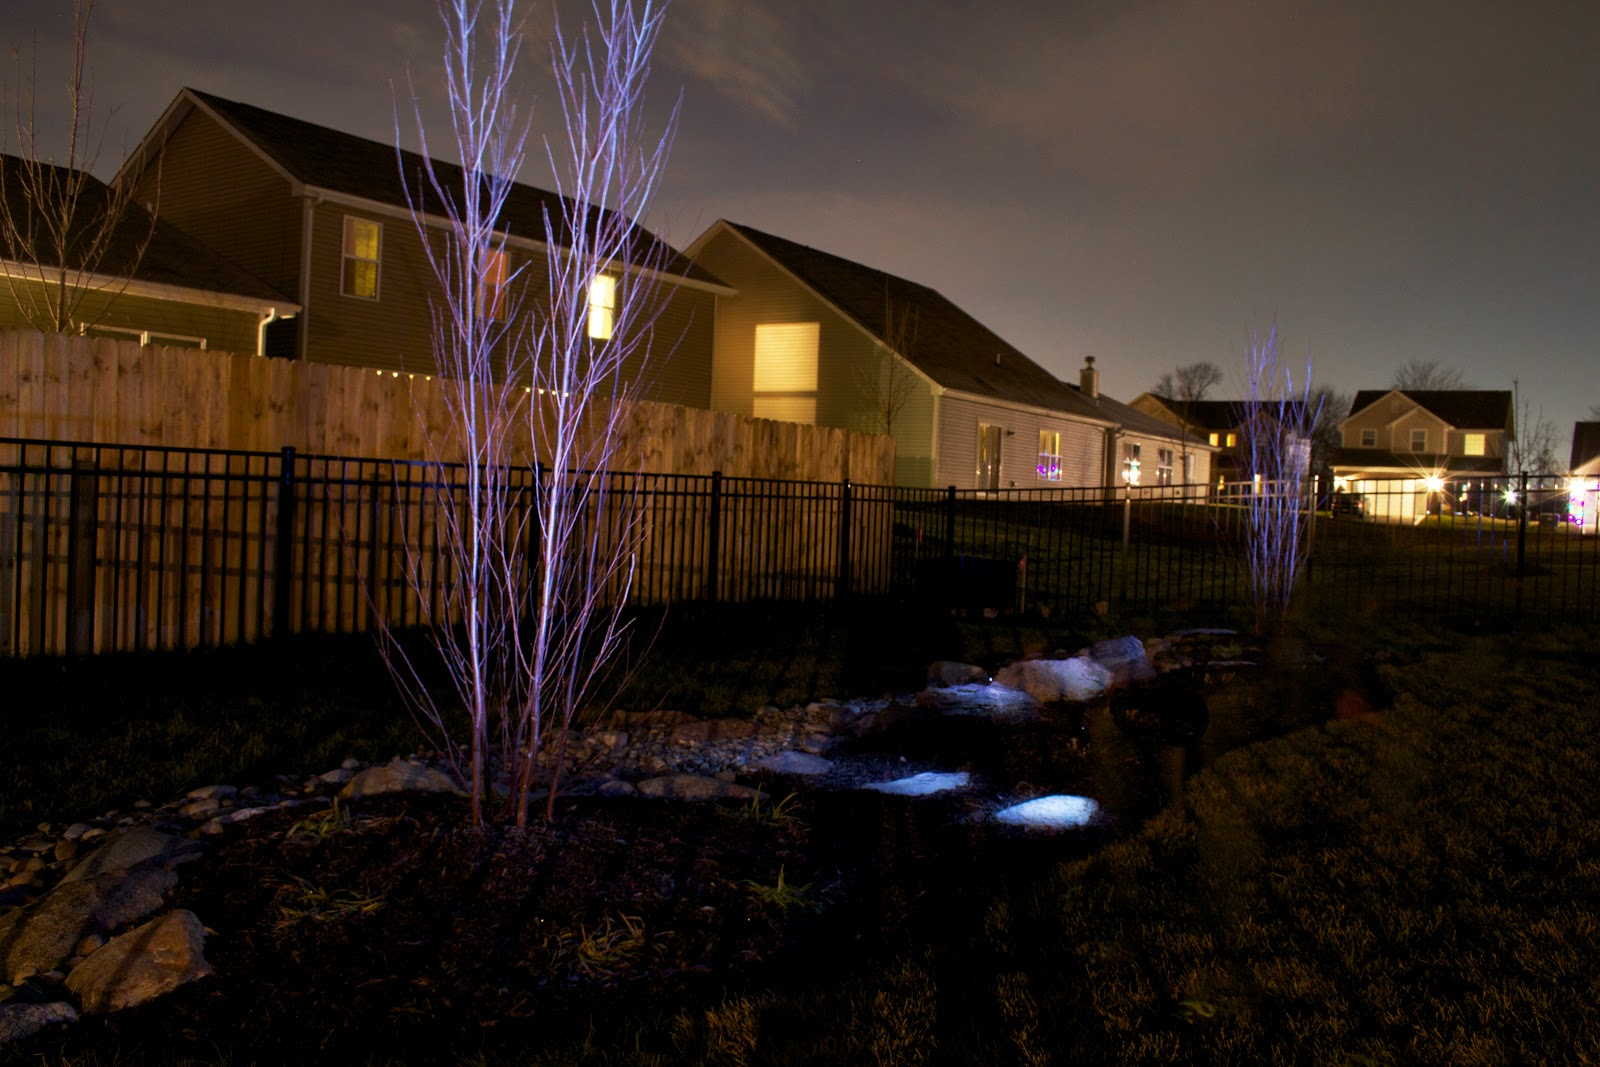 light painting highlight trees and stones